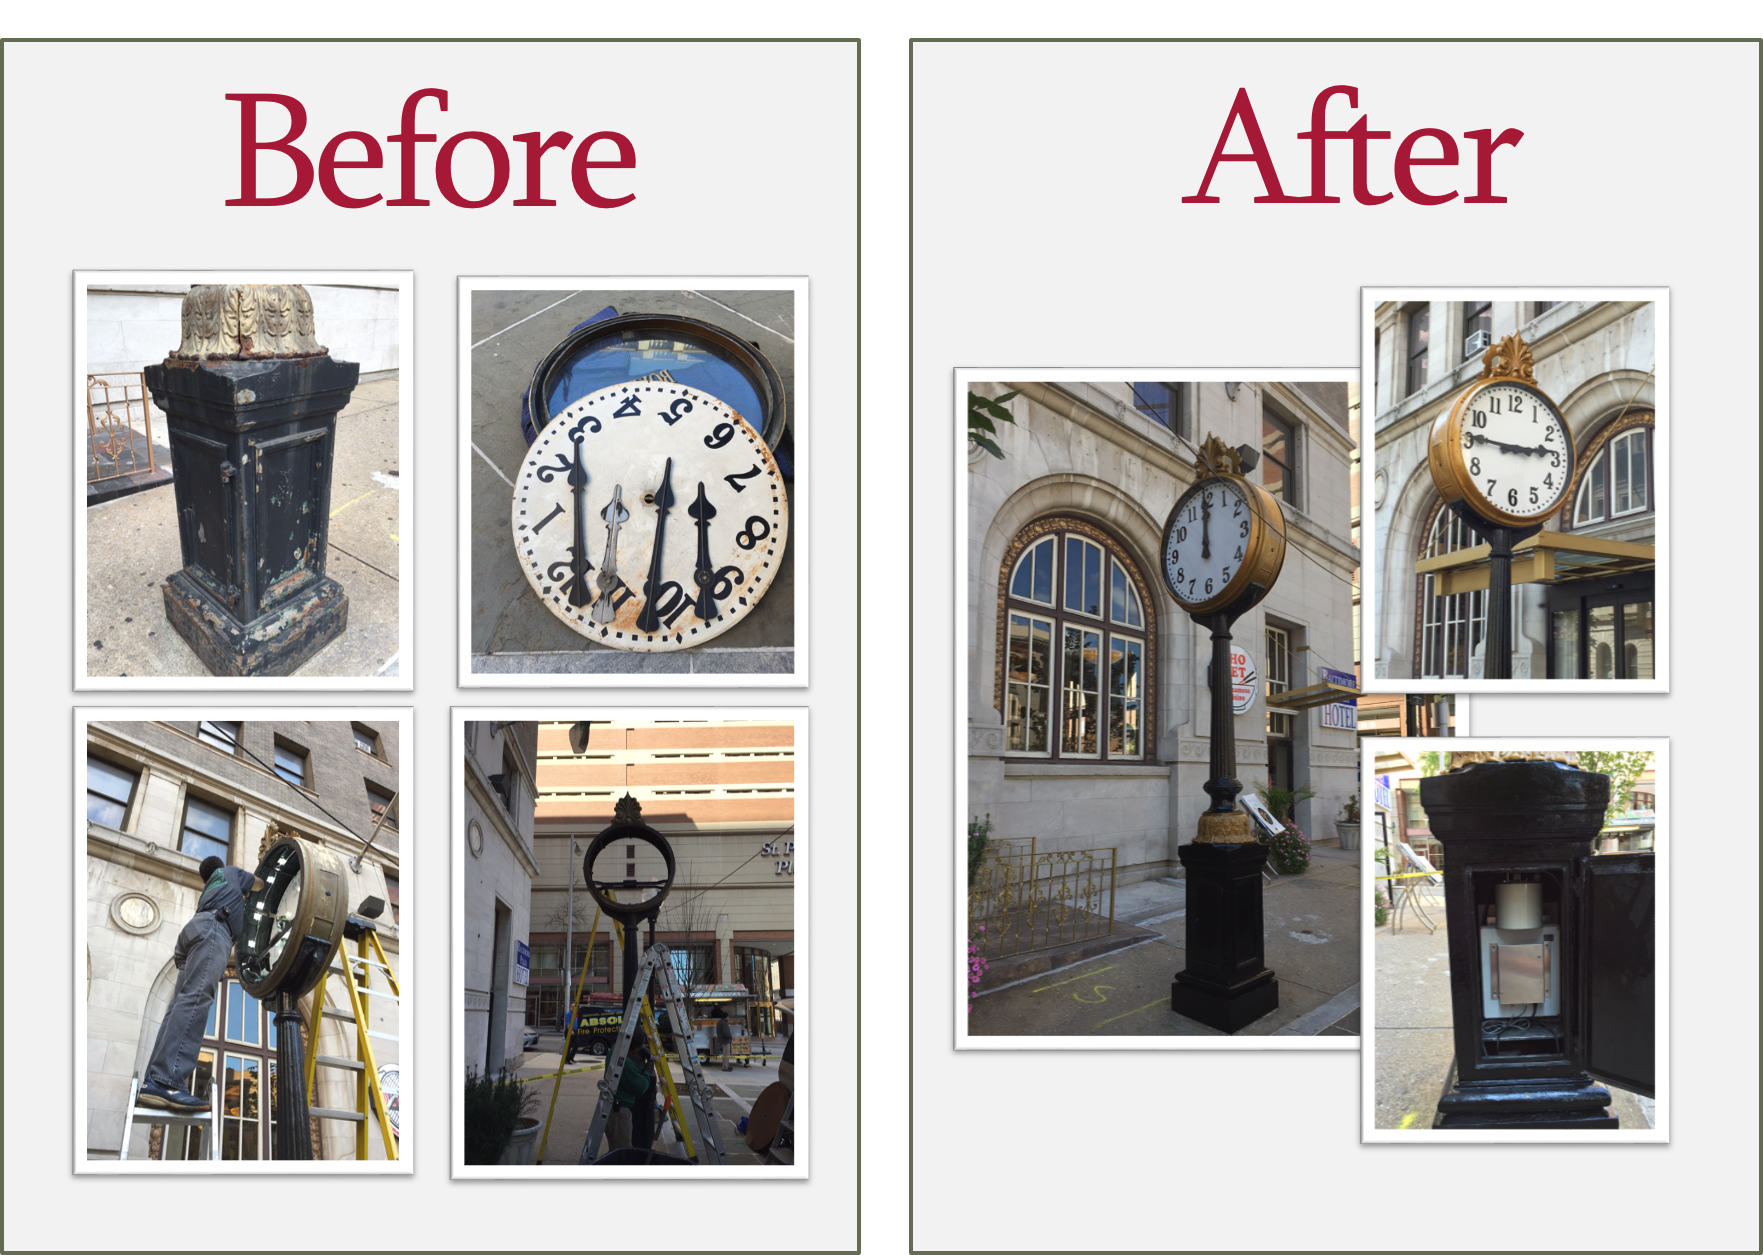 baltimore_street_clock_before_after